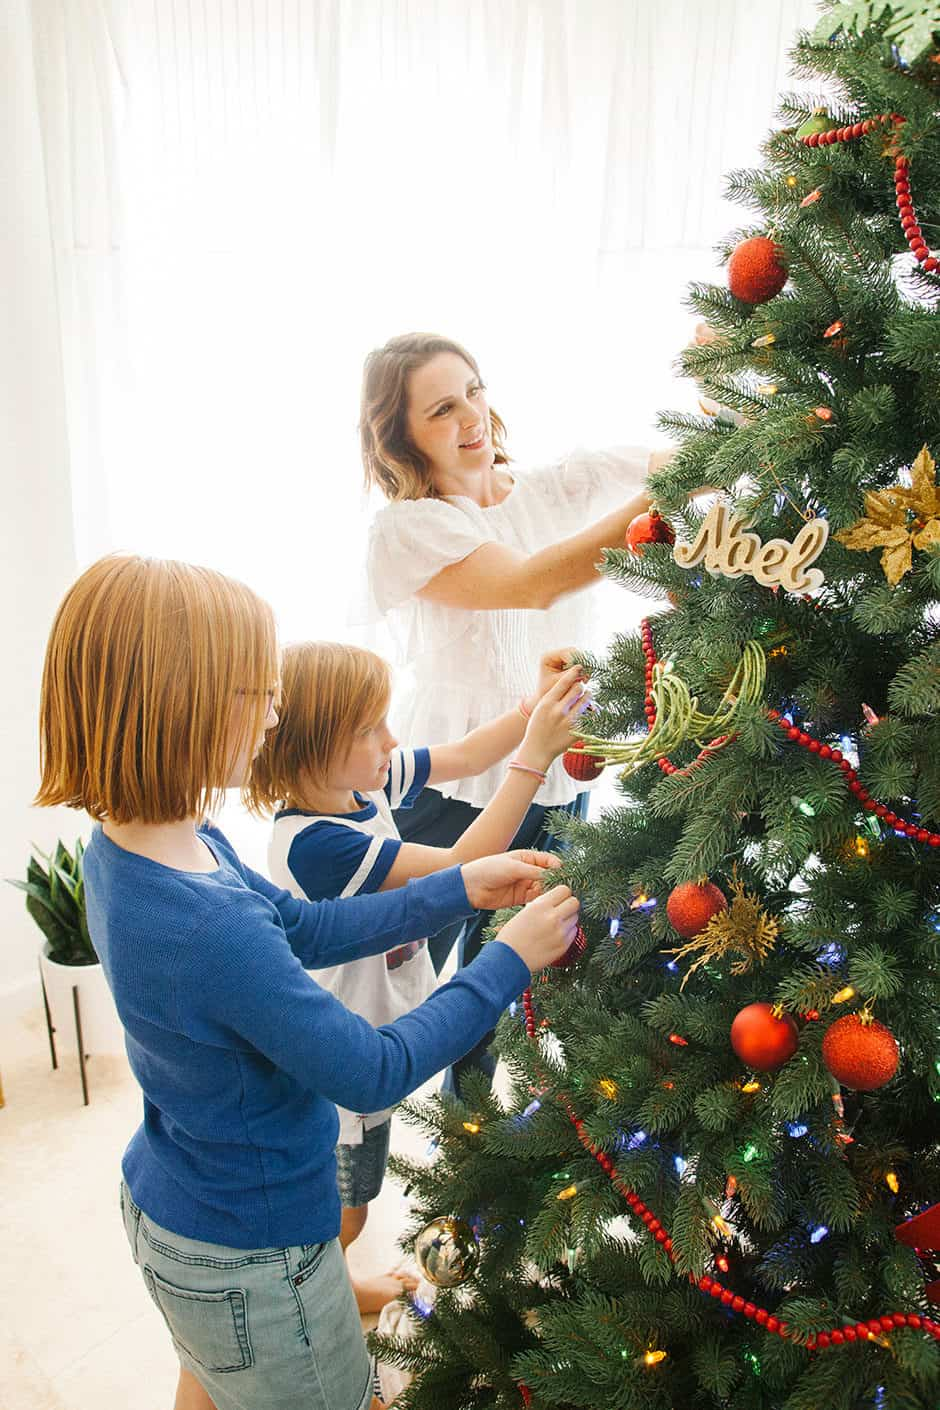 The holiday season is notoriously stressful and busy, but it doesn't have to be that way! Learn how to keep the magic alive and enjoy the season with your kids without having an anxiety attack. Read on for tips for a stress free Christmas!